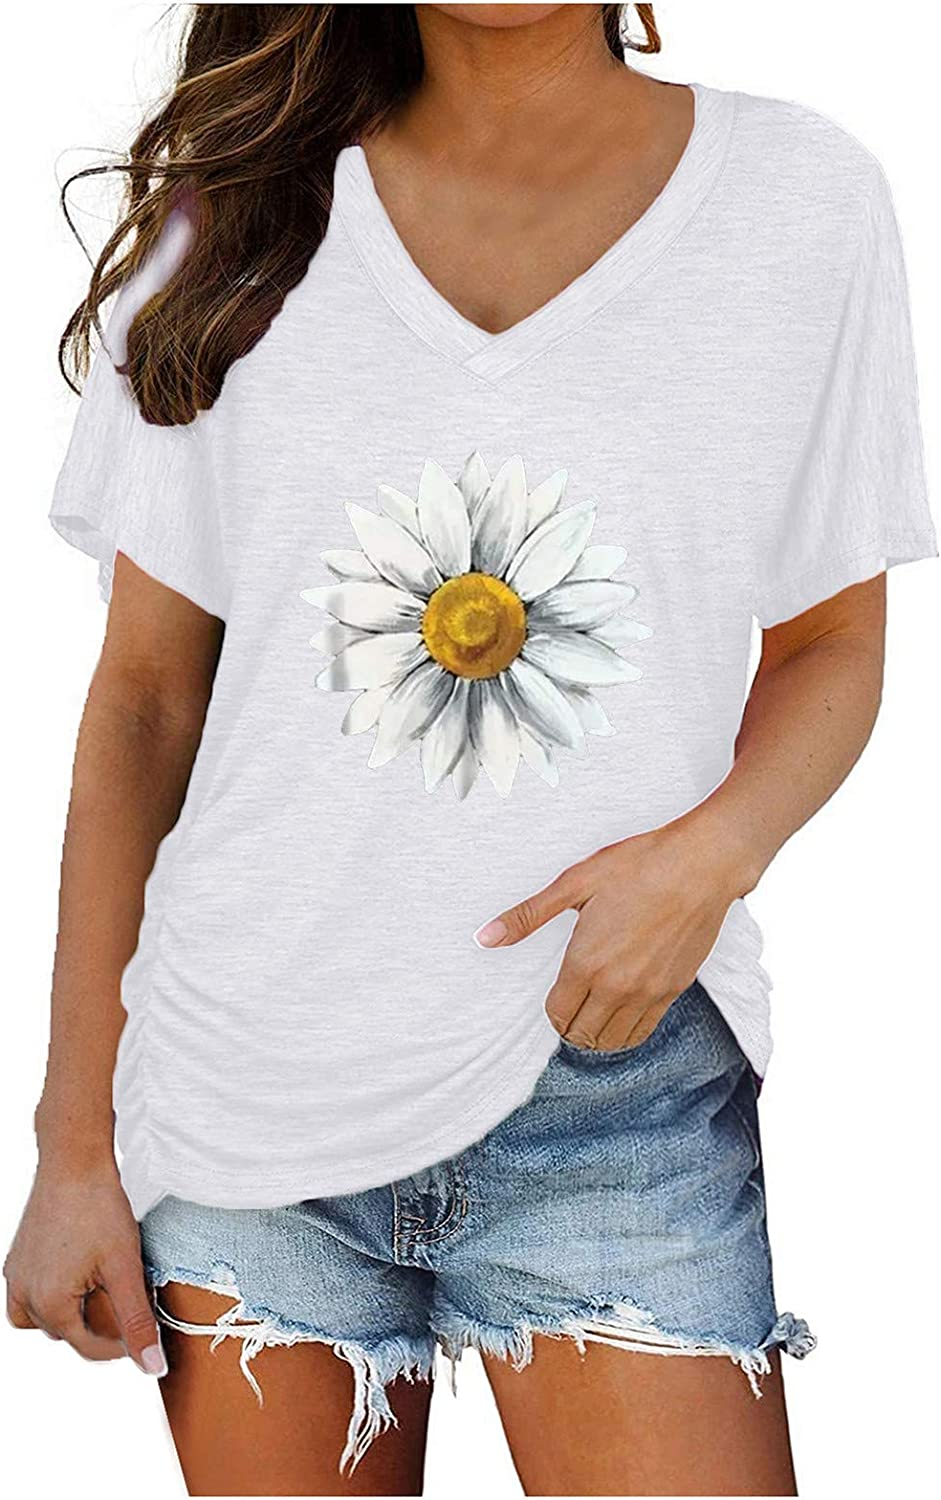 Aukbays T-Shirts for Womens Short Sleeve V Neck Dolman Tops with Side Shirring Daisy Print Loose Fit Shirts Blouses